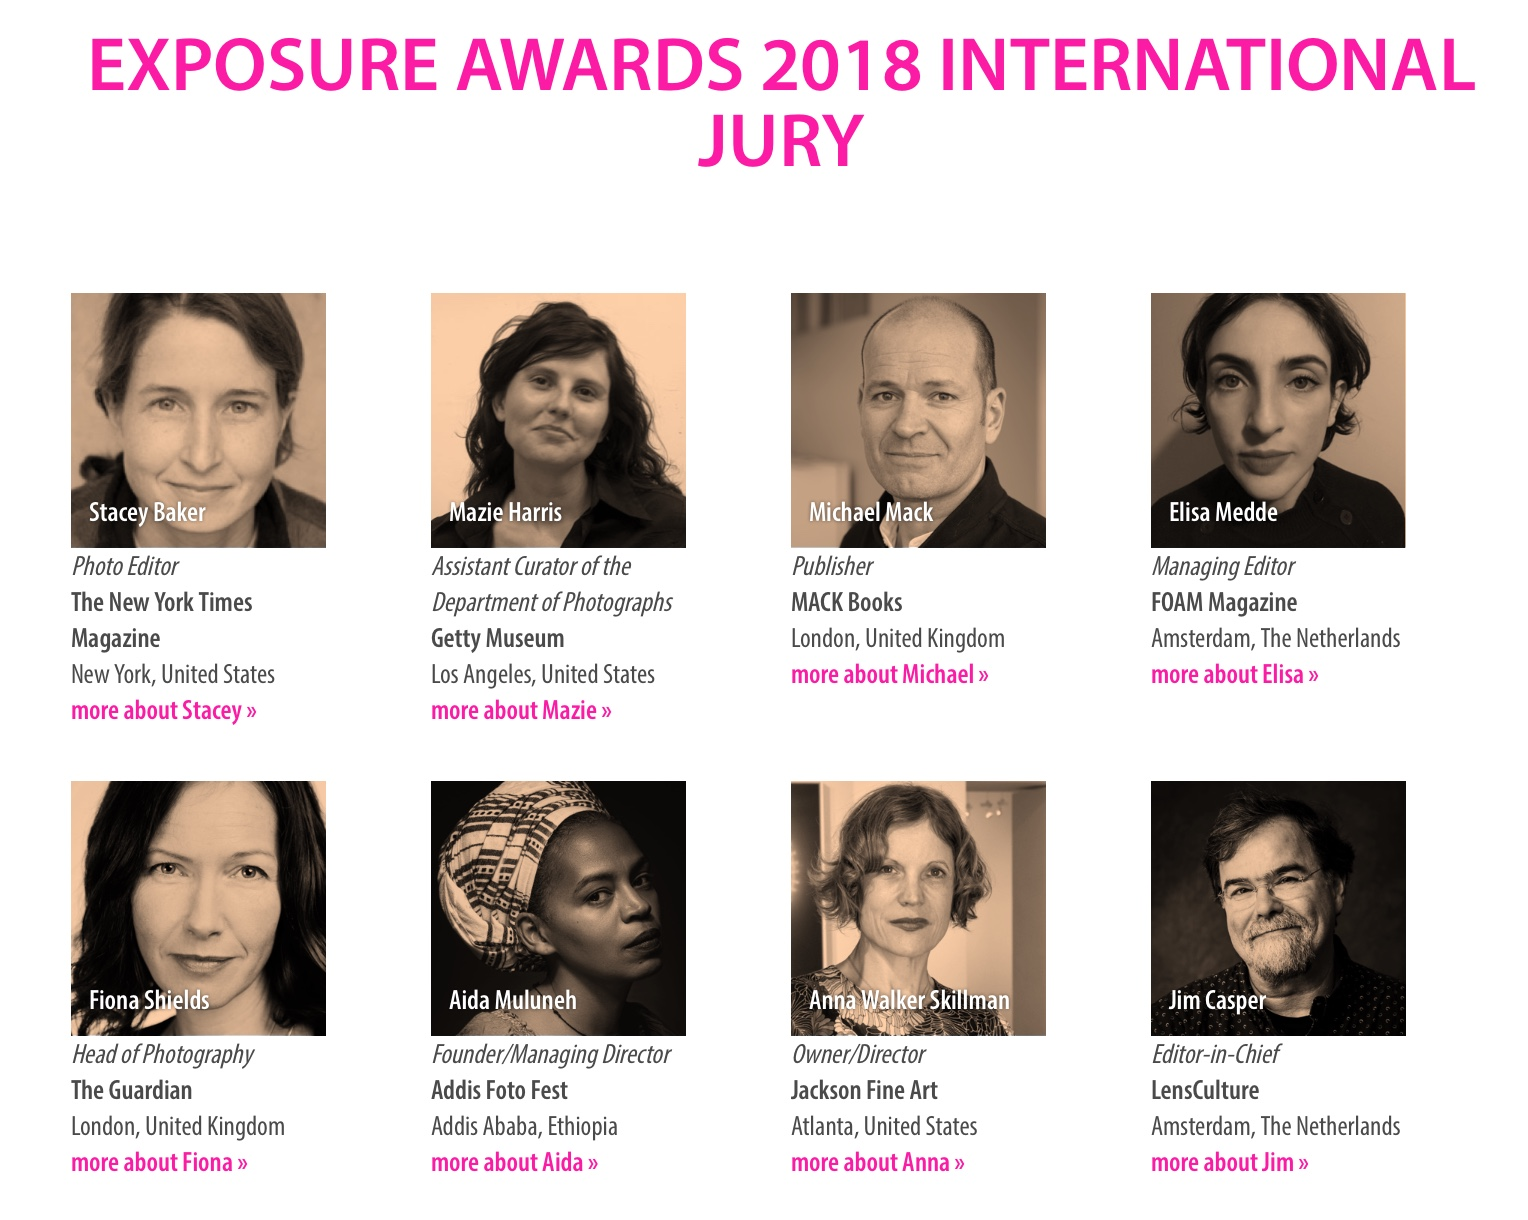 The LensCulture Exposure Awards aim to discover and showcase the world's best contemporary photographers! The competition helps photographers of all levels gain global recognition and provide career-changing exposure for the jury's six winners. With a following of 2.8 million global audiences, it is the largest contemporary photography community in the world.